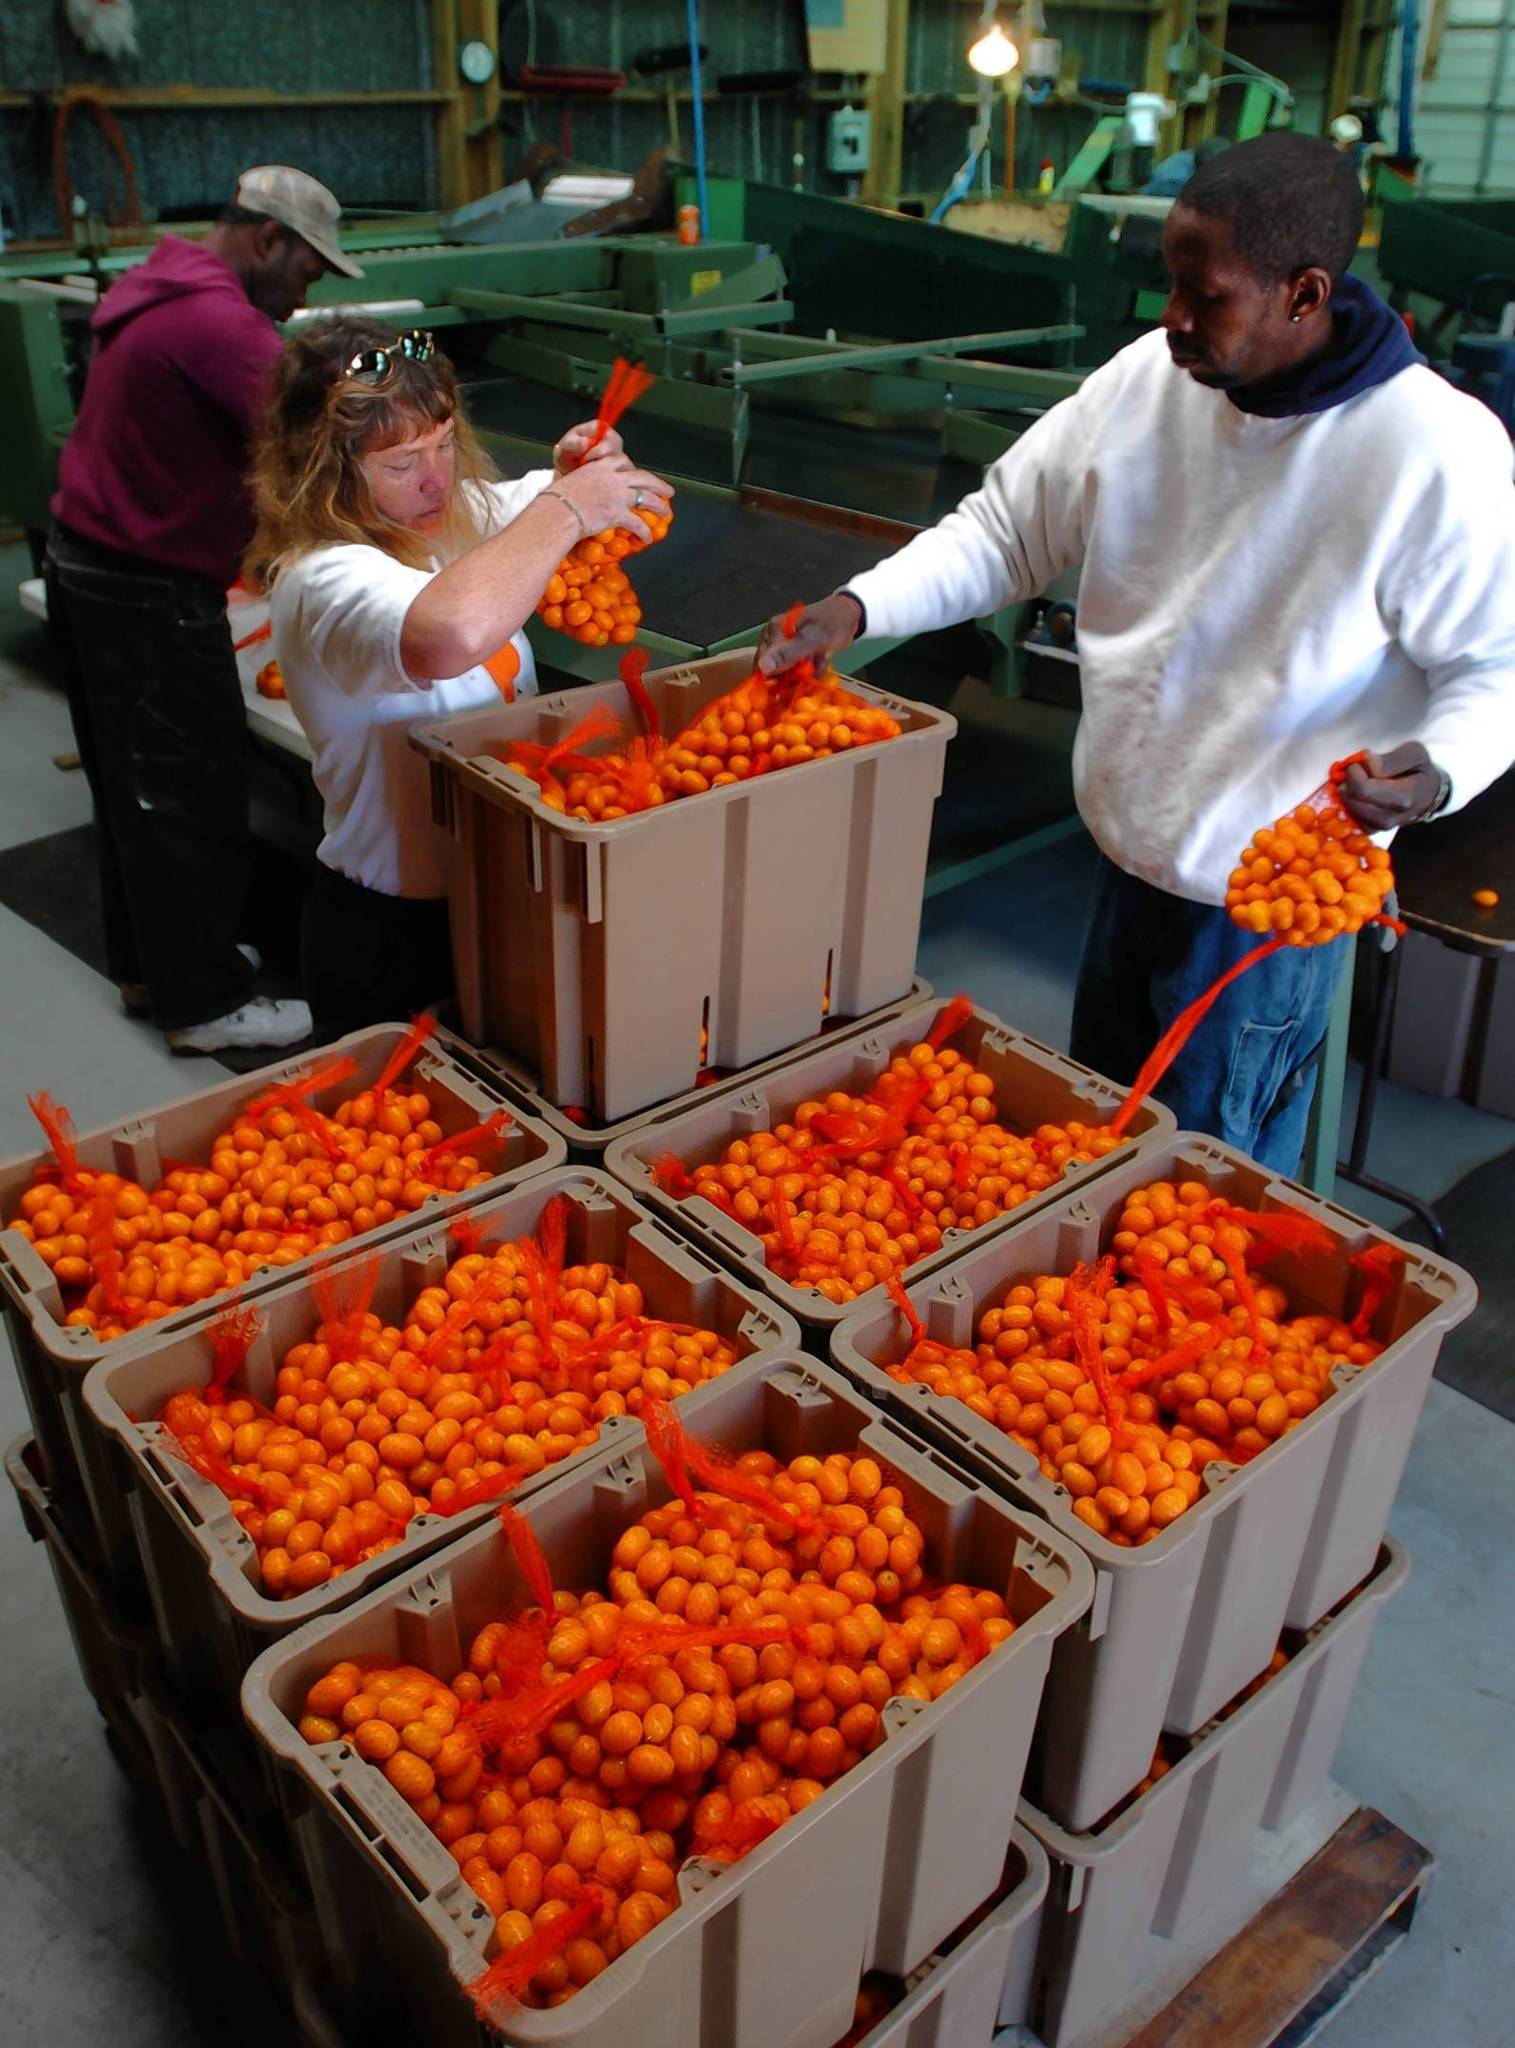 Kumquats will be the stars of the annual Kumquat Festival on Jan. 26 in Dade City. The event features arts and crafts and kumquat treats.